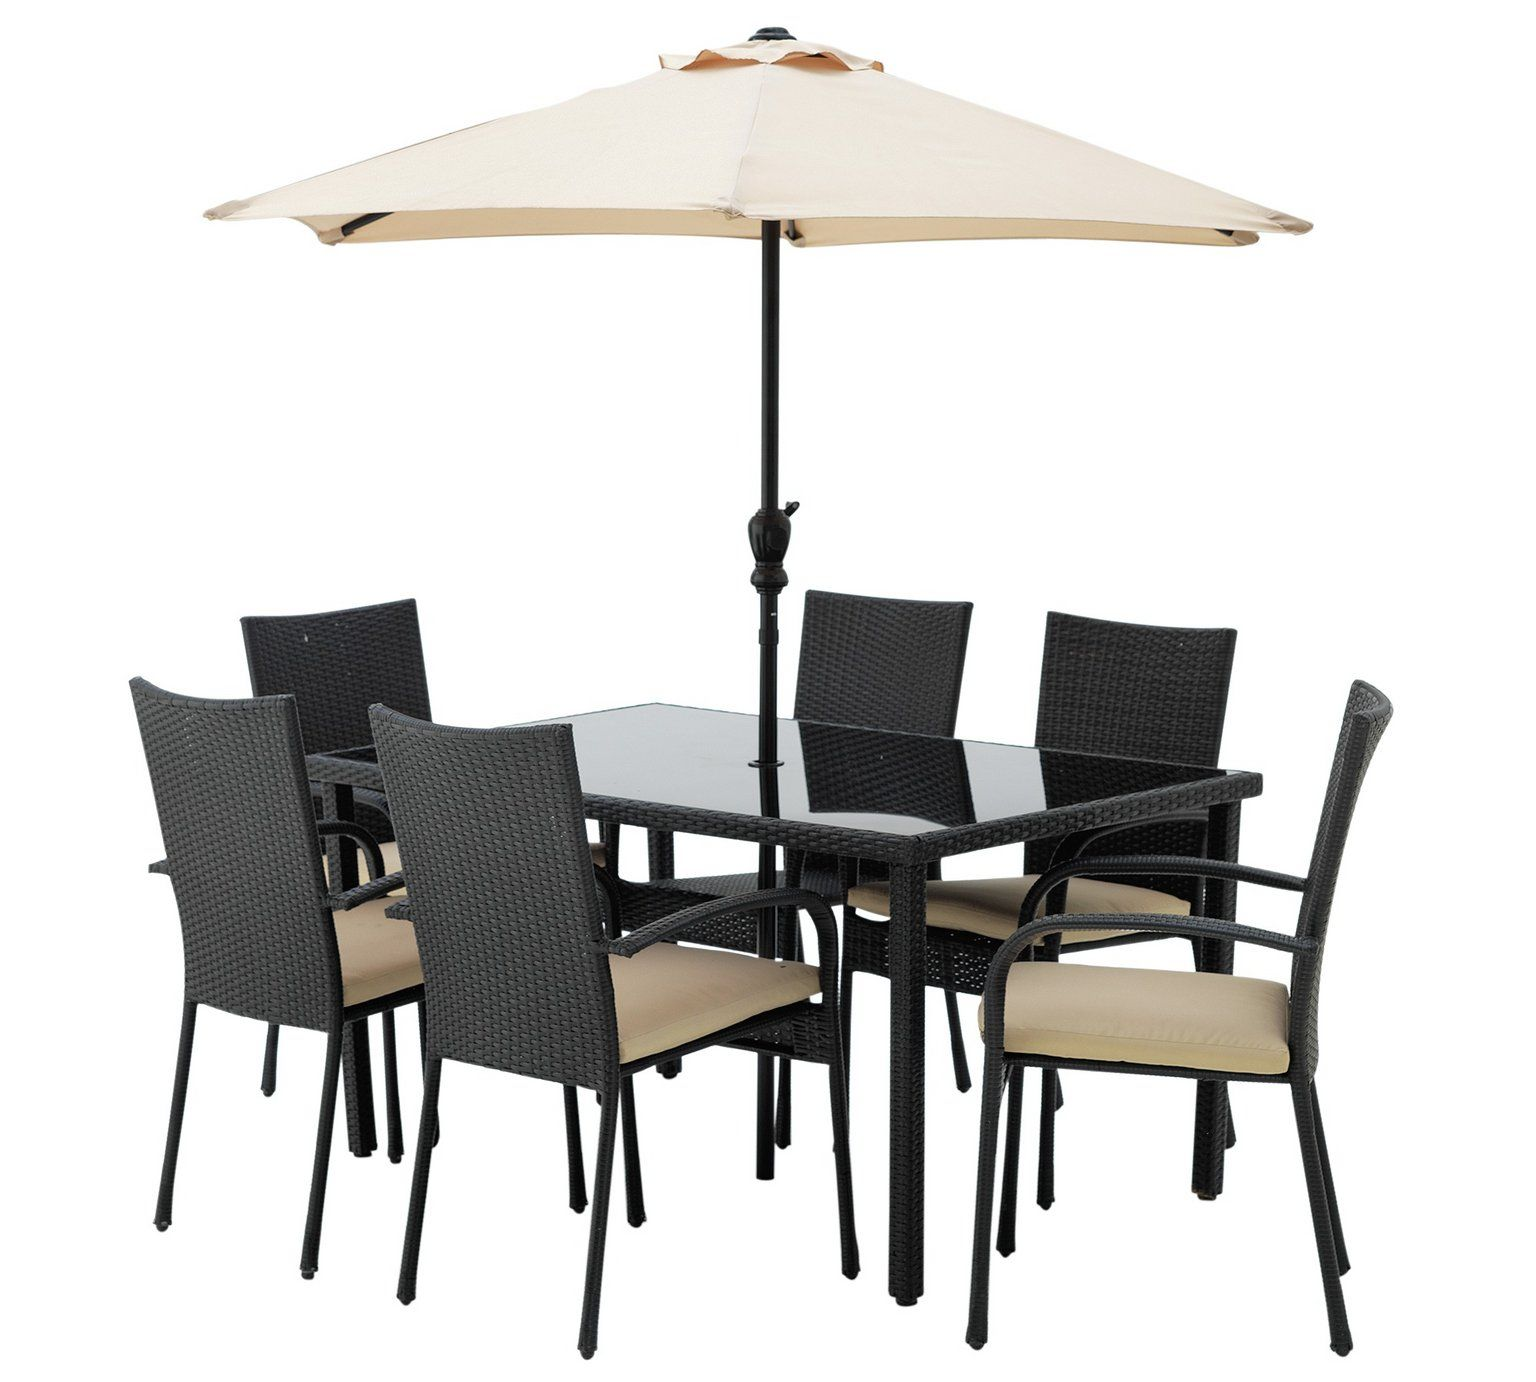 Buy HOME Lima Rattan Effect 6 Seater Dining Set with